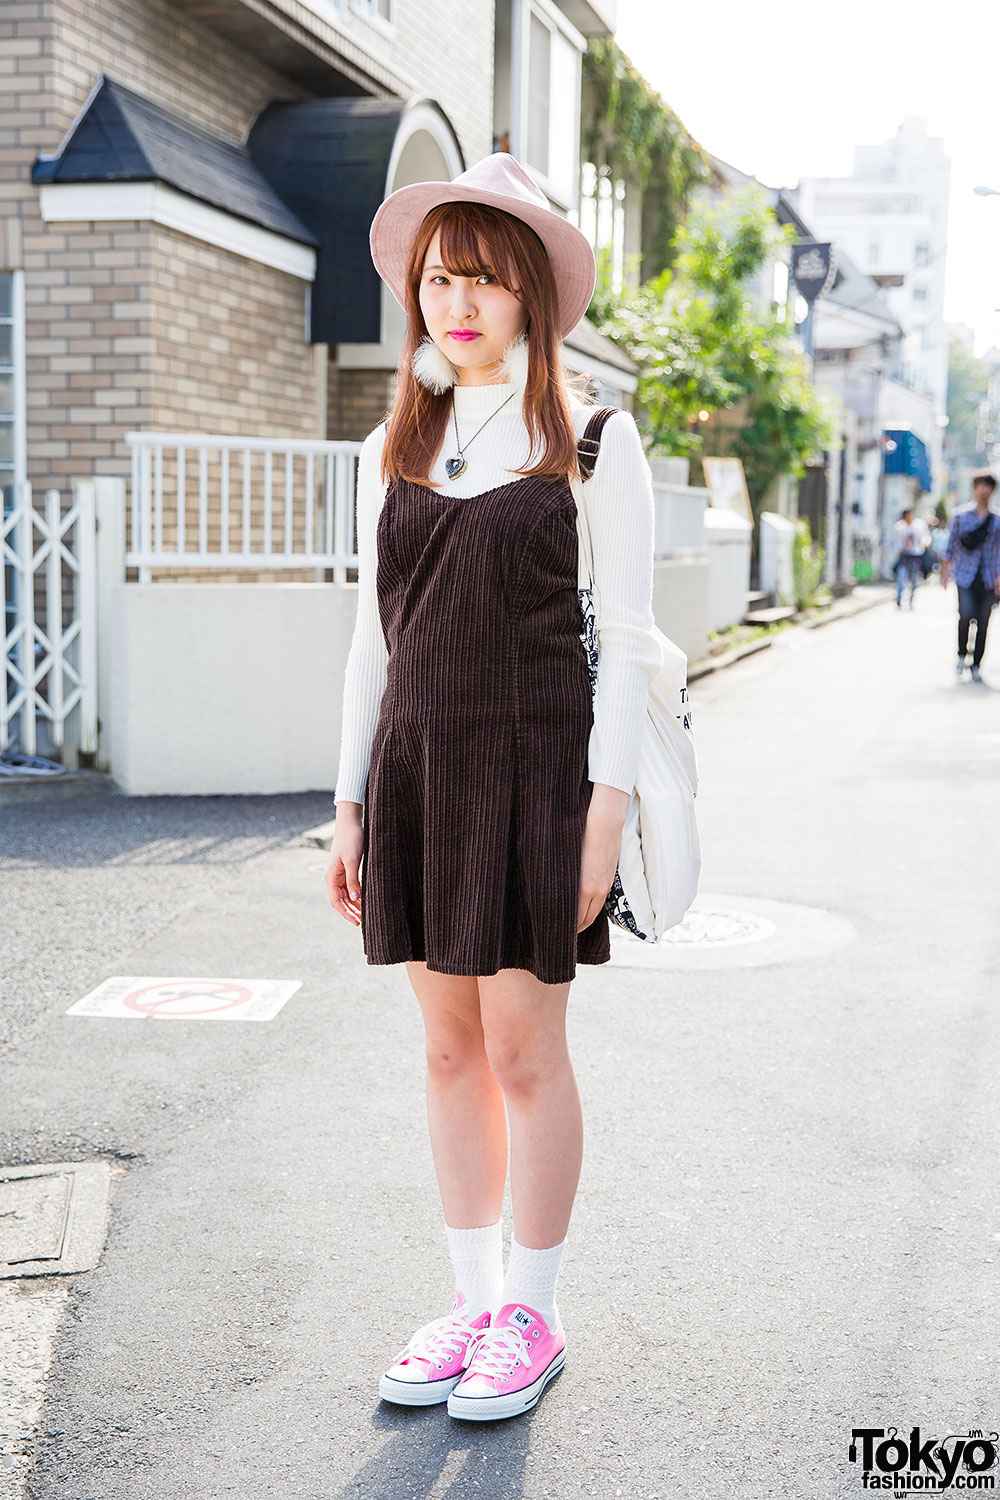 Harajuku Girl In Pink Hat Corduroy Pinafore Converse Sneakers